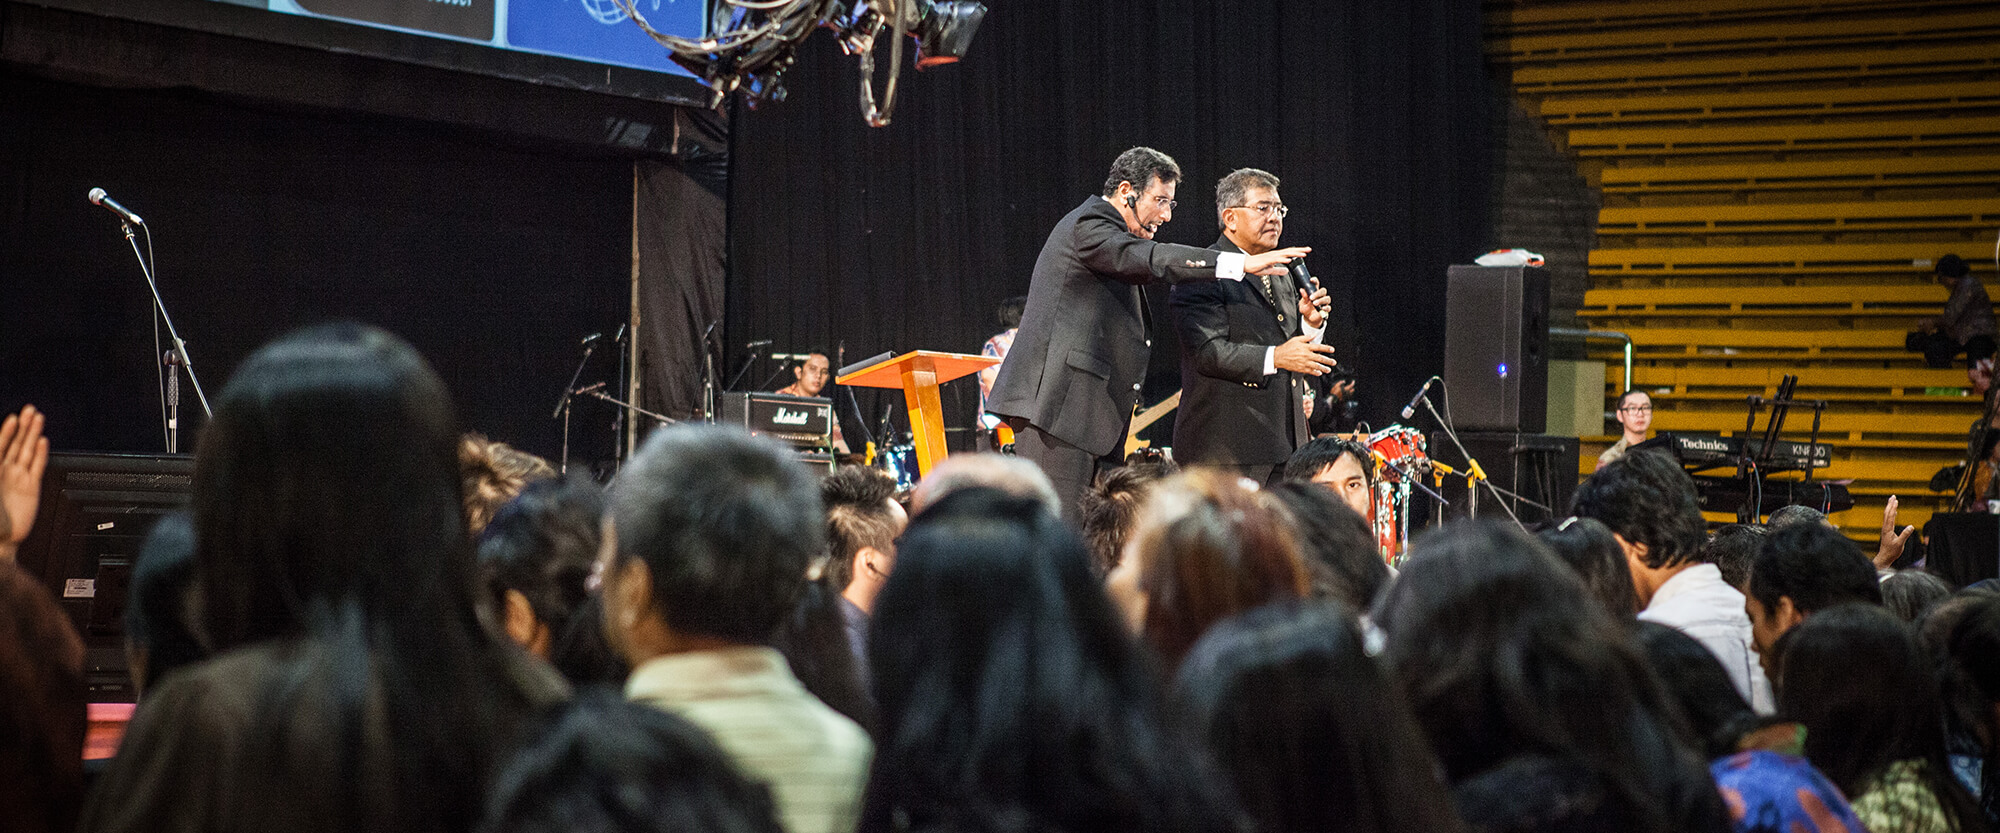 Michael Youssef Preaching in Indonesia